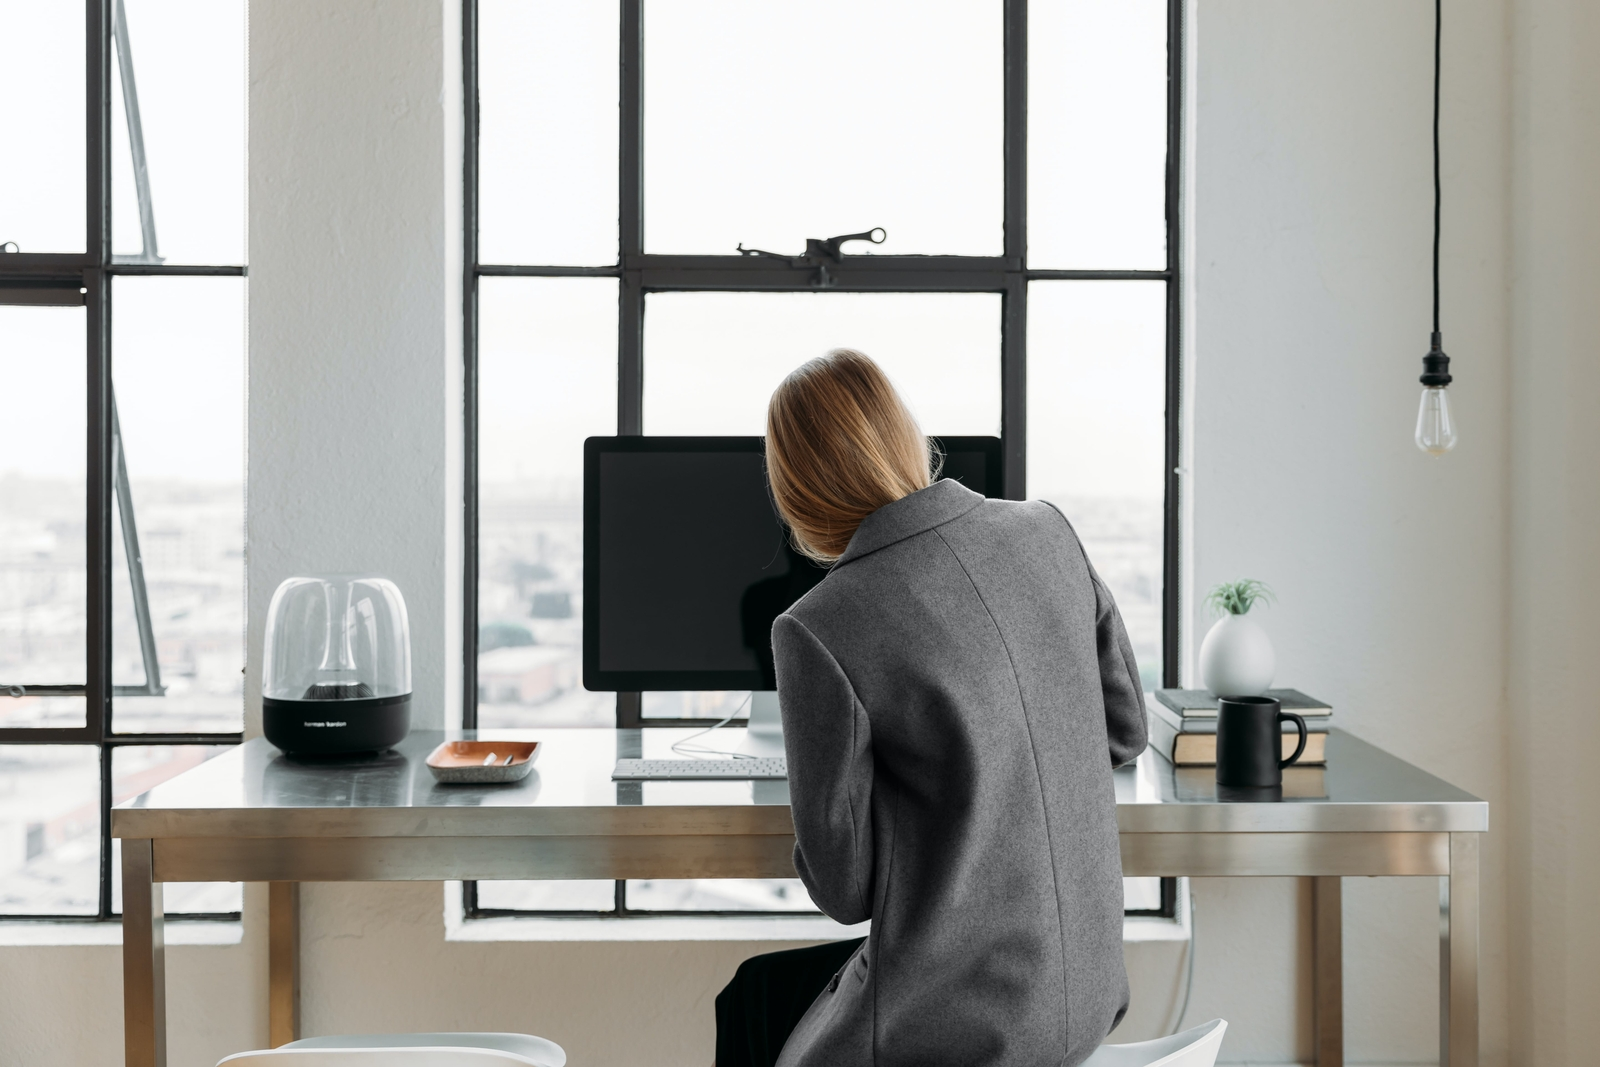 A women in front of her desk writing things down on a computer.